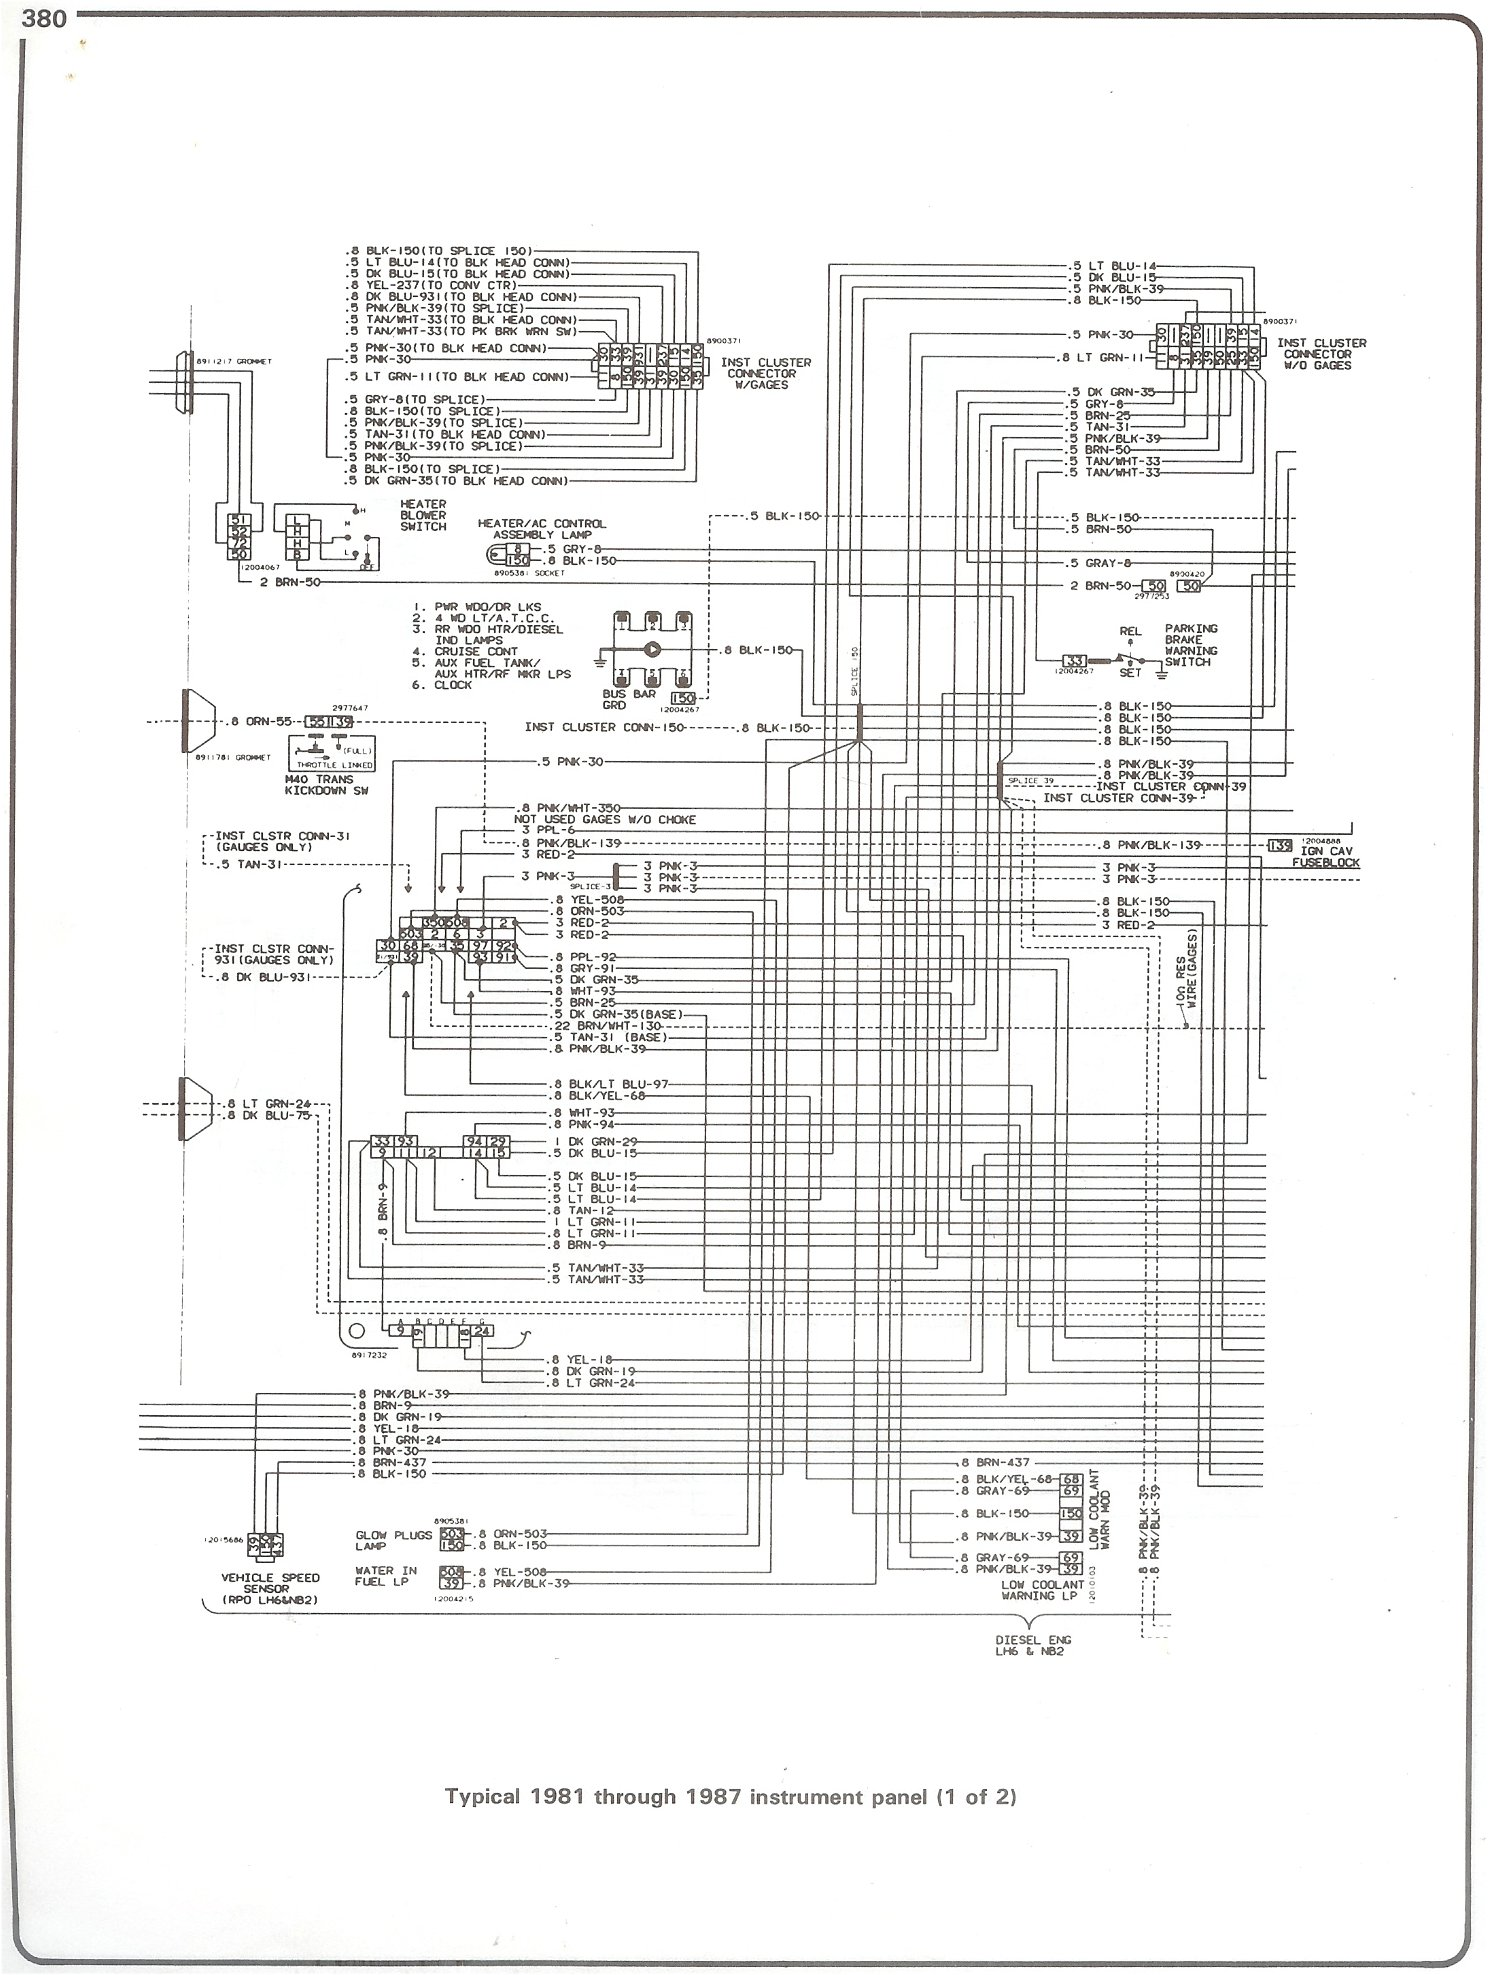 1976 chevy truck belt diagram wiring schematic best wiring library1976 chevy k20 wiring diagram modern design of wiring diagram \\u2022 chevy wiring diagrams color